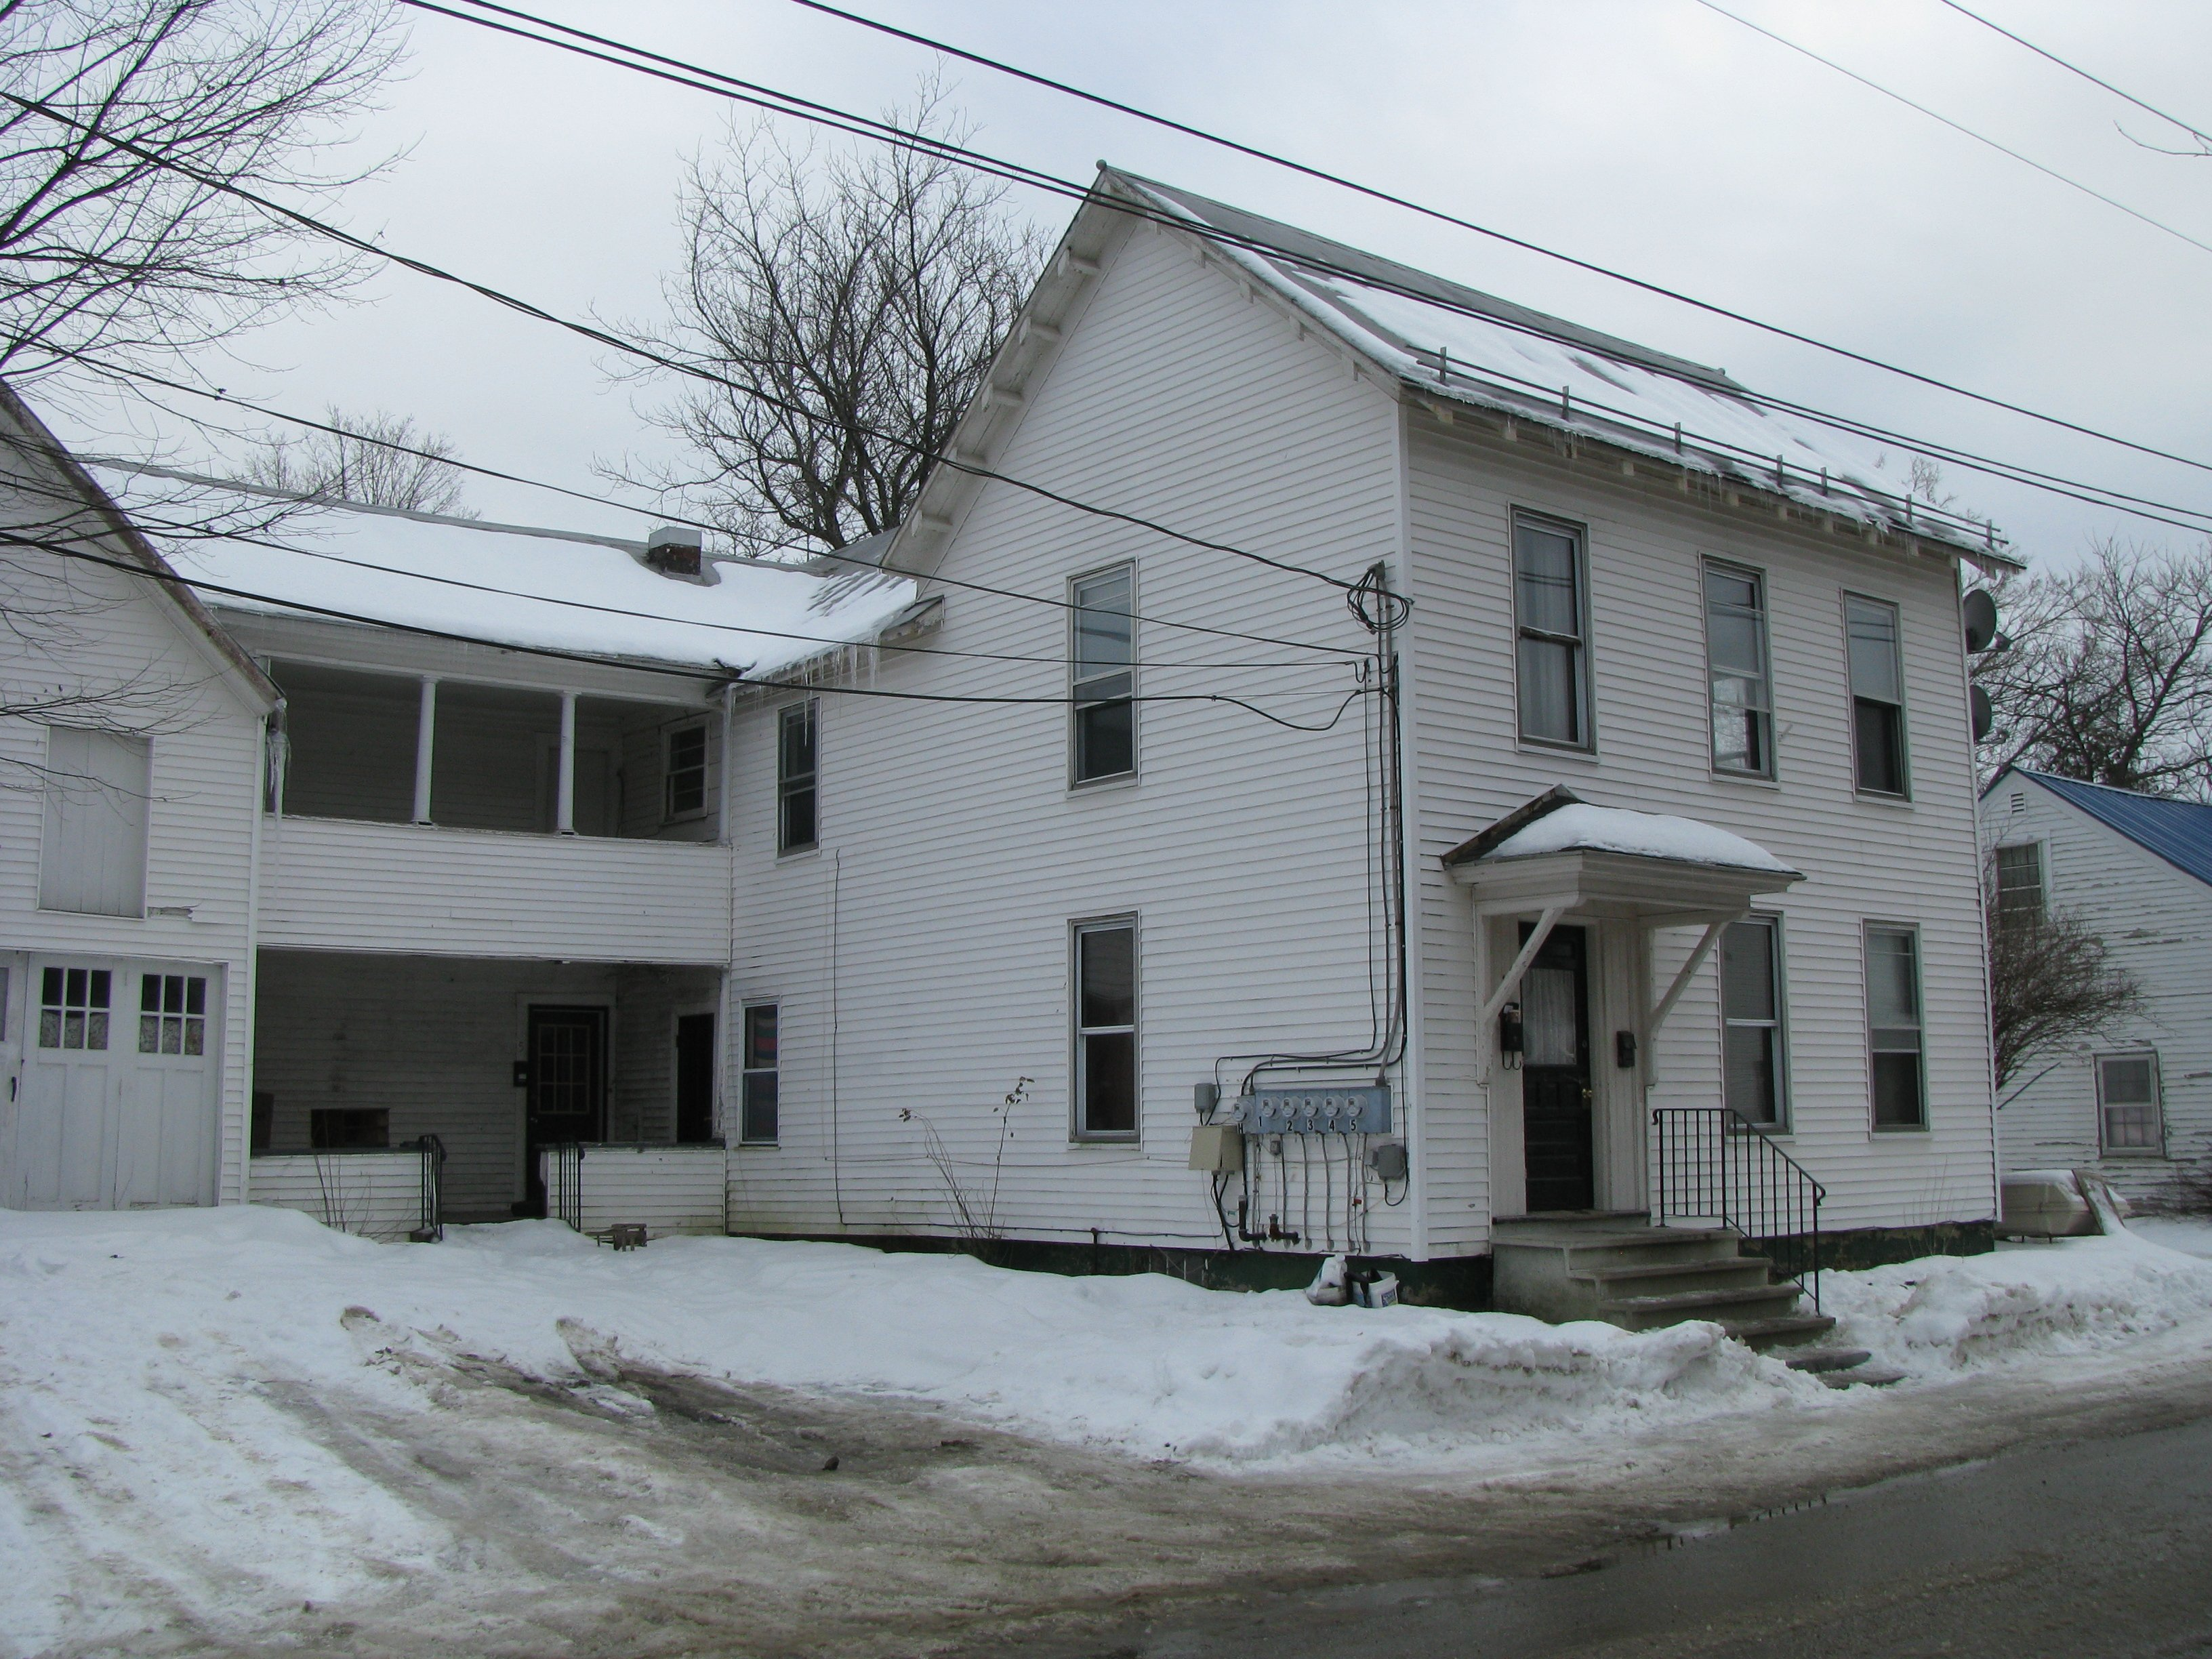 Board To Discuss Dangerous House With Old Wiring Lewiston Sun In Advertisement